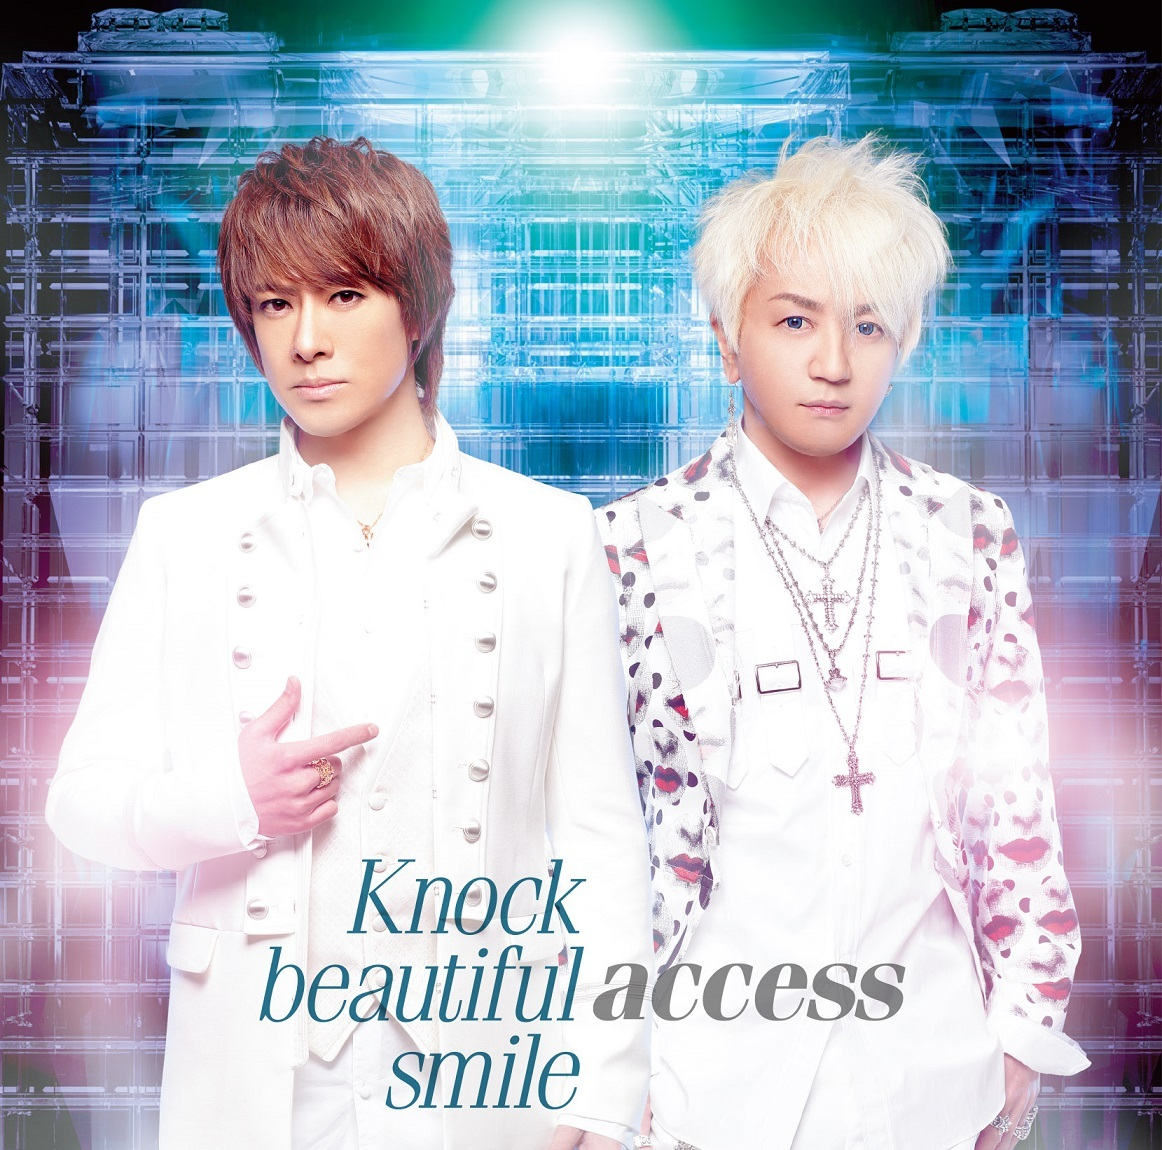 access「Knock beautiful smile」通常盤A